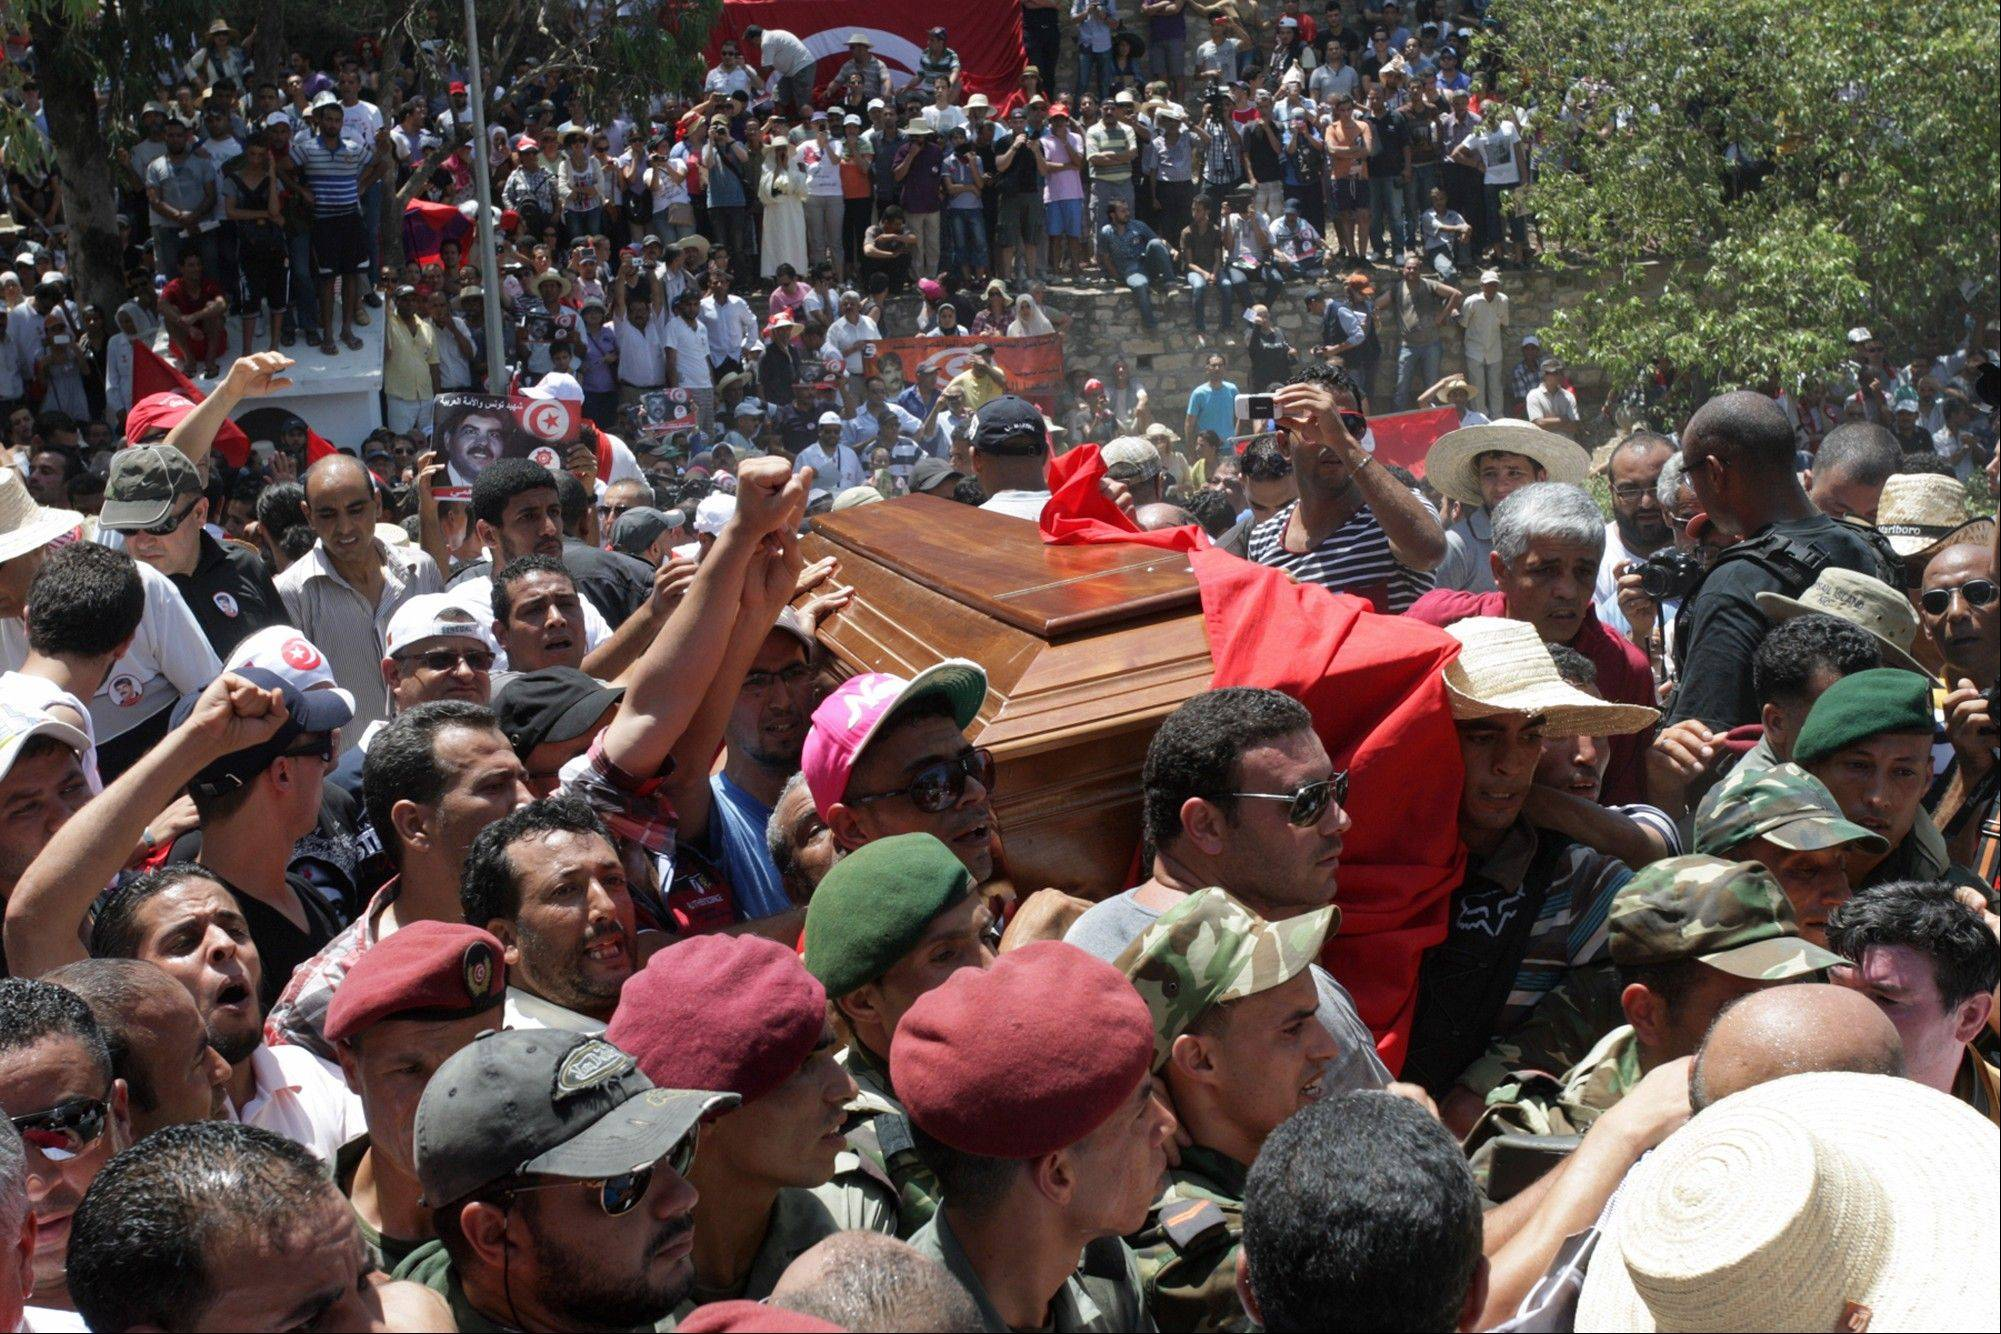 Tunisians carry the coffin of Tunisian opposition politician Mohammed Brahmi during his funeral at Jallez Cemetery in Tunis, Saturday July, 27, 2013. Mohamed Brahmi was shot 14 times in front of his home within sight of his family on Thursday, plunging the country into a political crisis and unleashing demonstrations around the country blaming the government for the assassination. Tunisia's prime minister said Monday the government will not step down despite opposition demands.